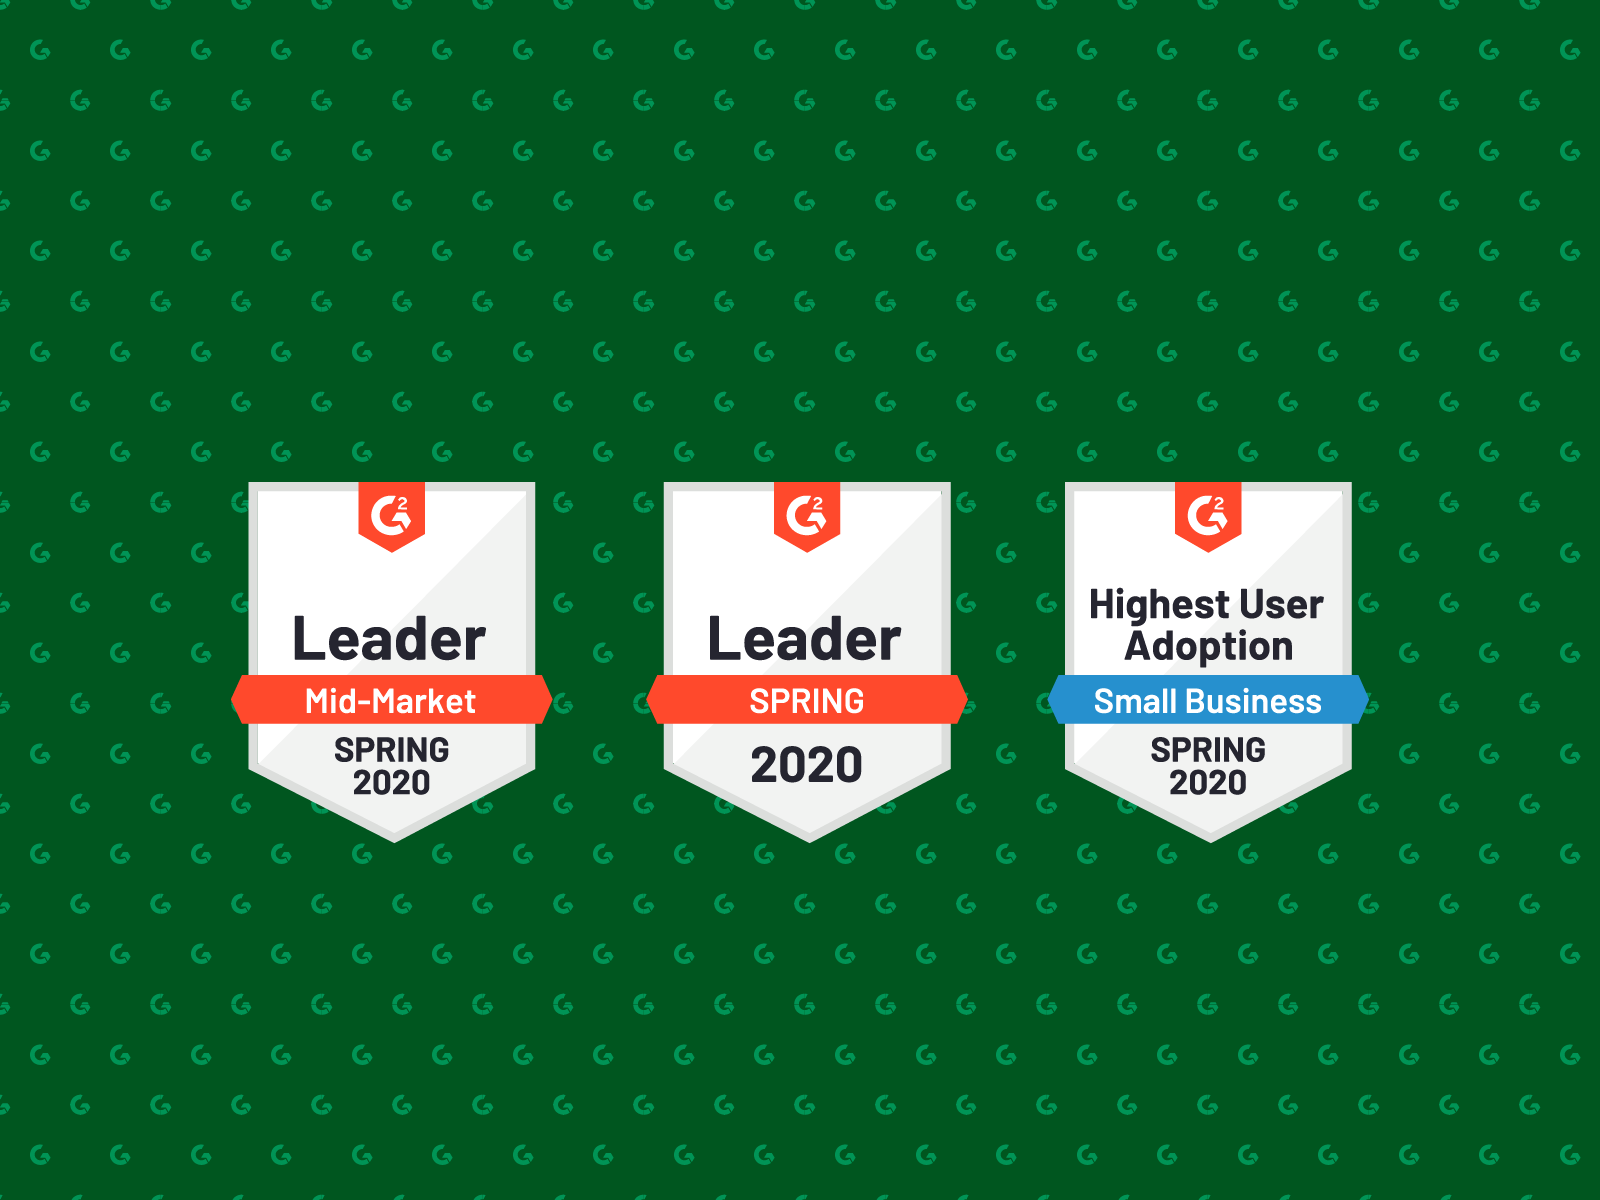 Kentico Xperience is awarded three G2 Spring 2020 badges